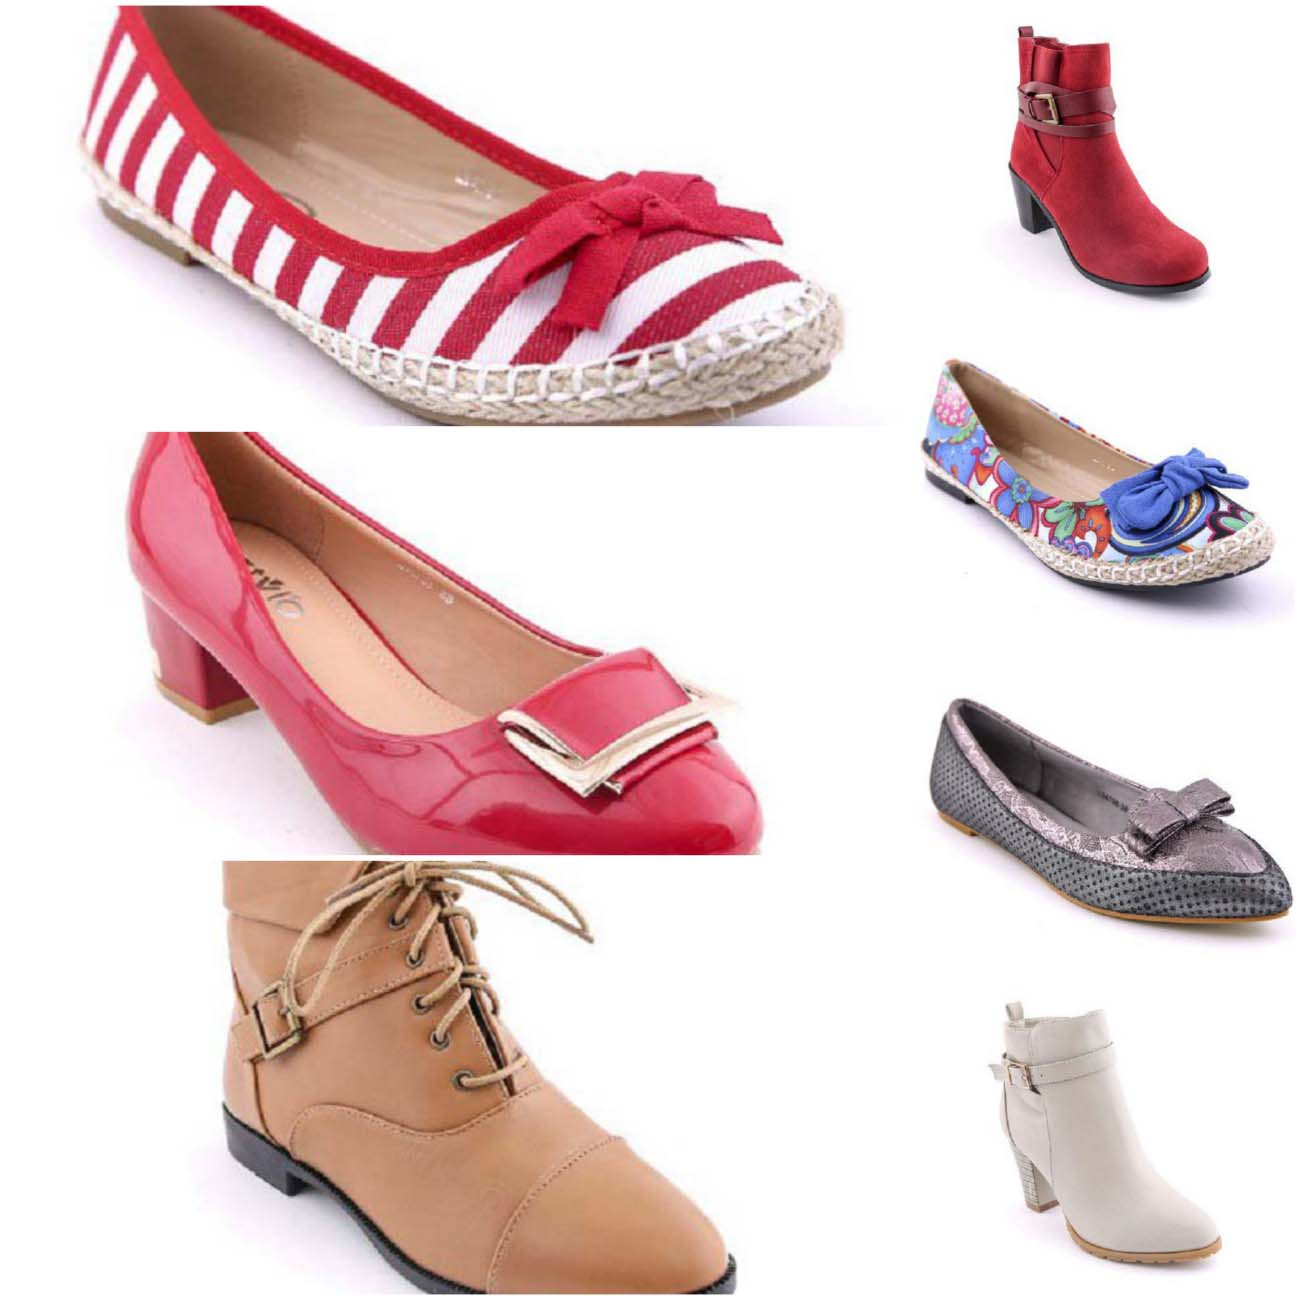 Latest pumps and Boots Collection By Stylo Shoes | Stylo ...